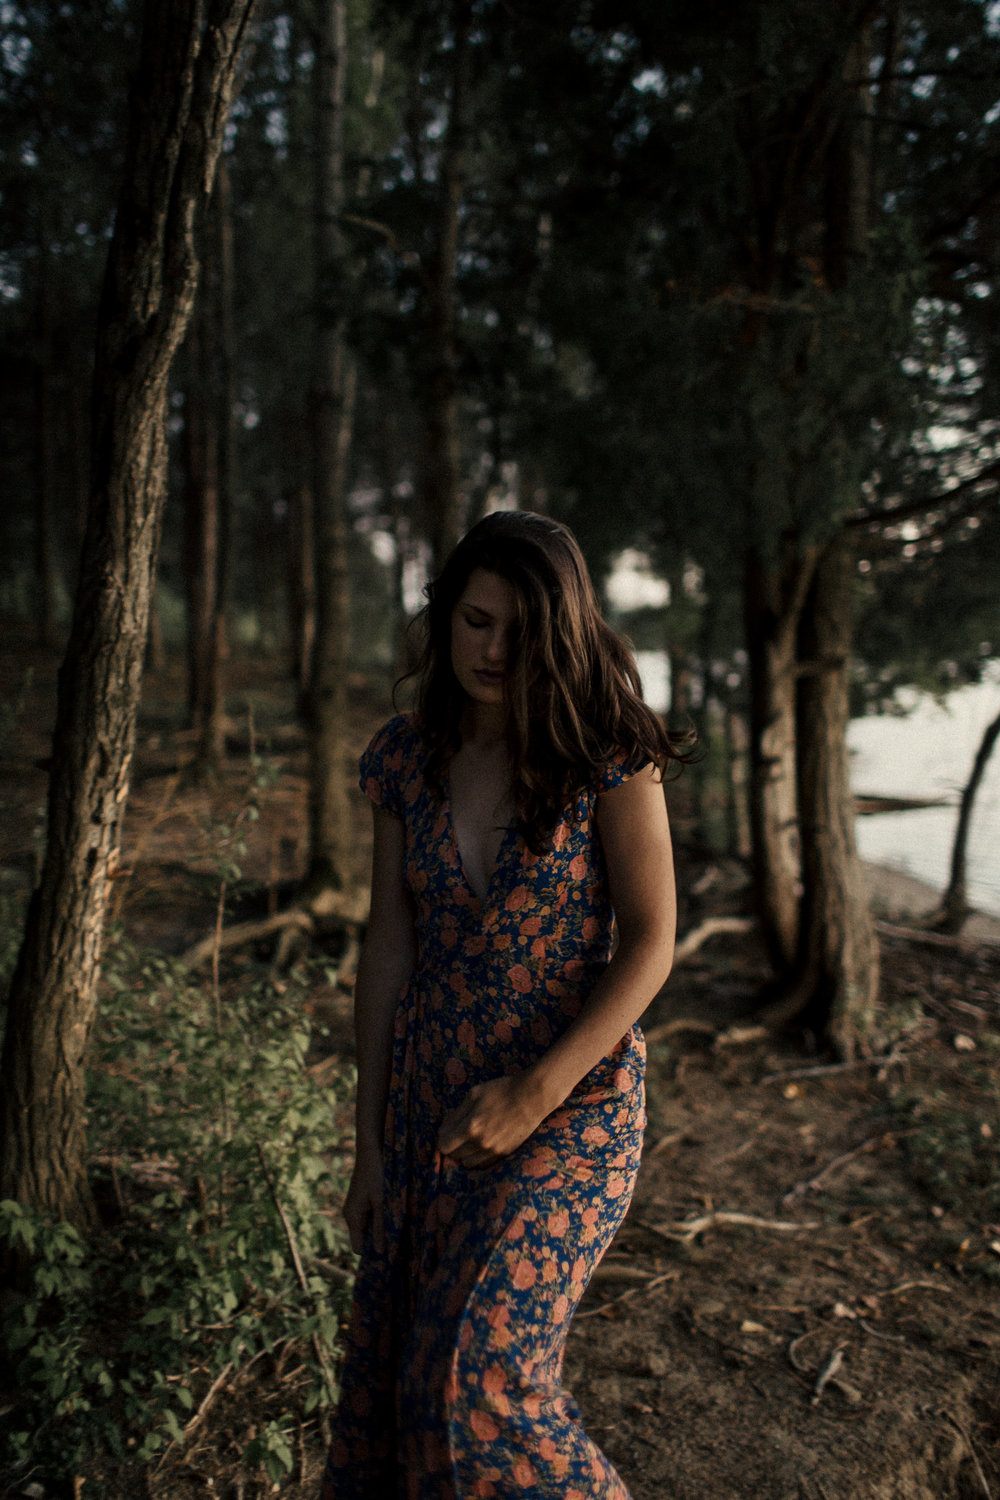 floral maxi dress tularosa sid maxi dress editorial sarah rose iamsarahrose ohio portrait photography